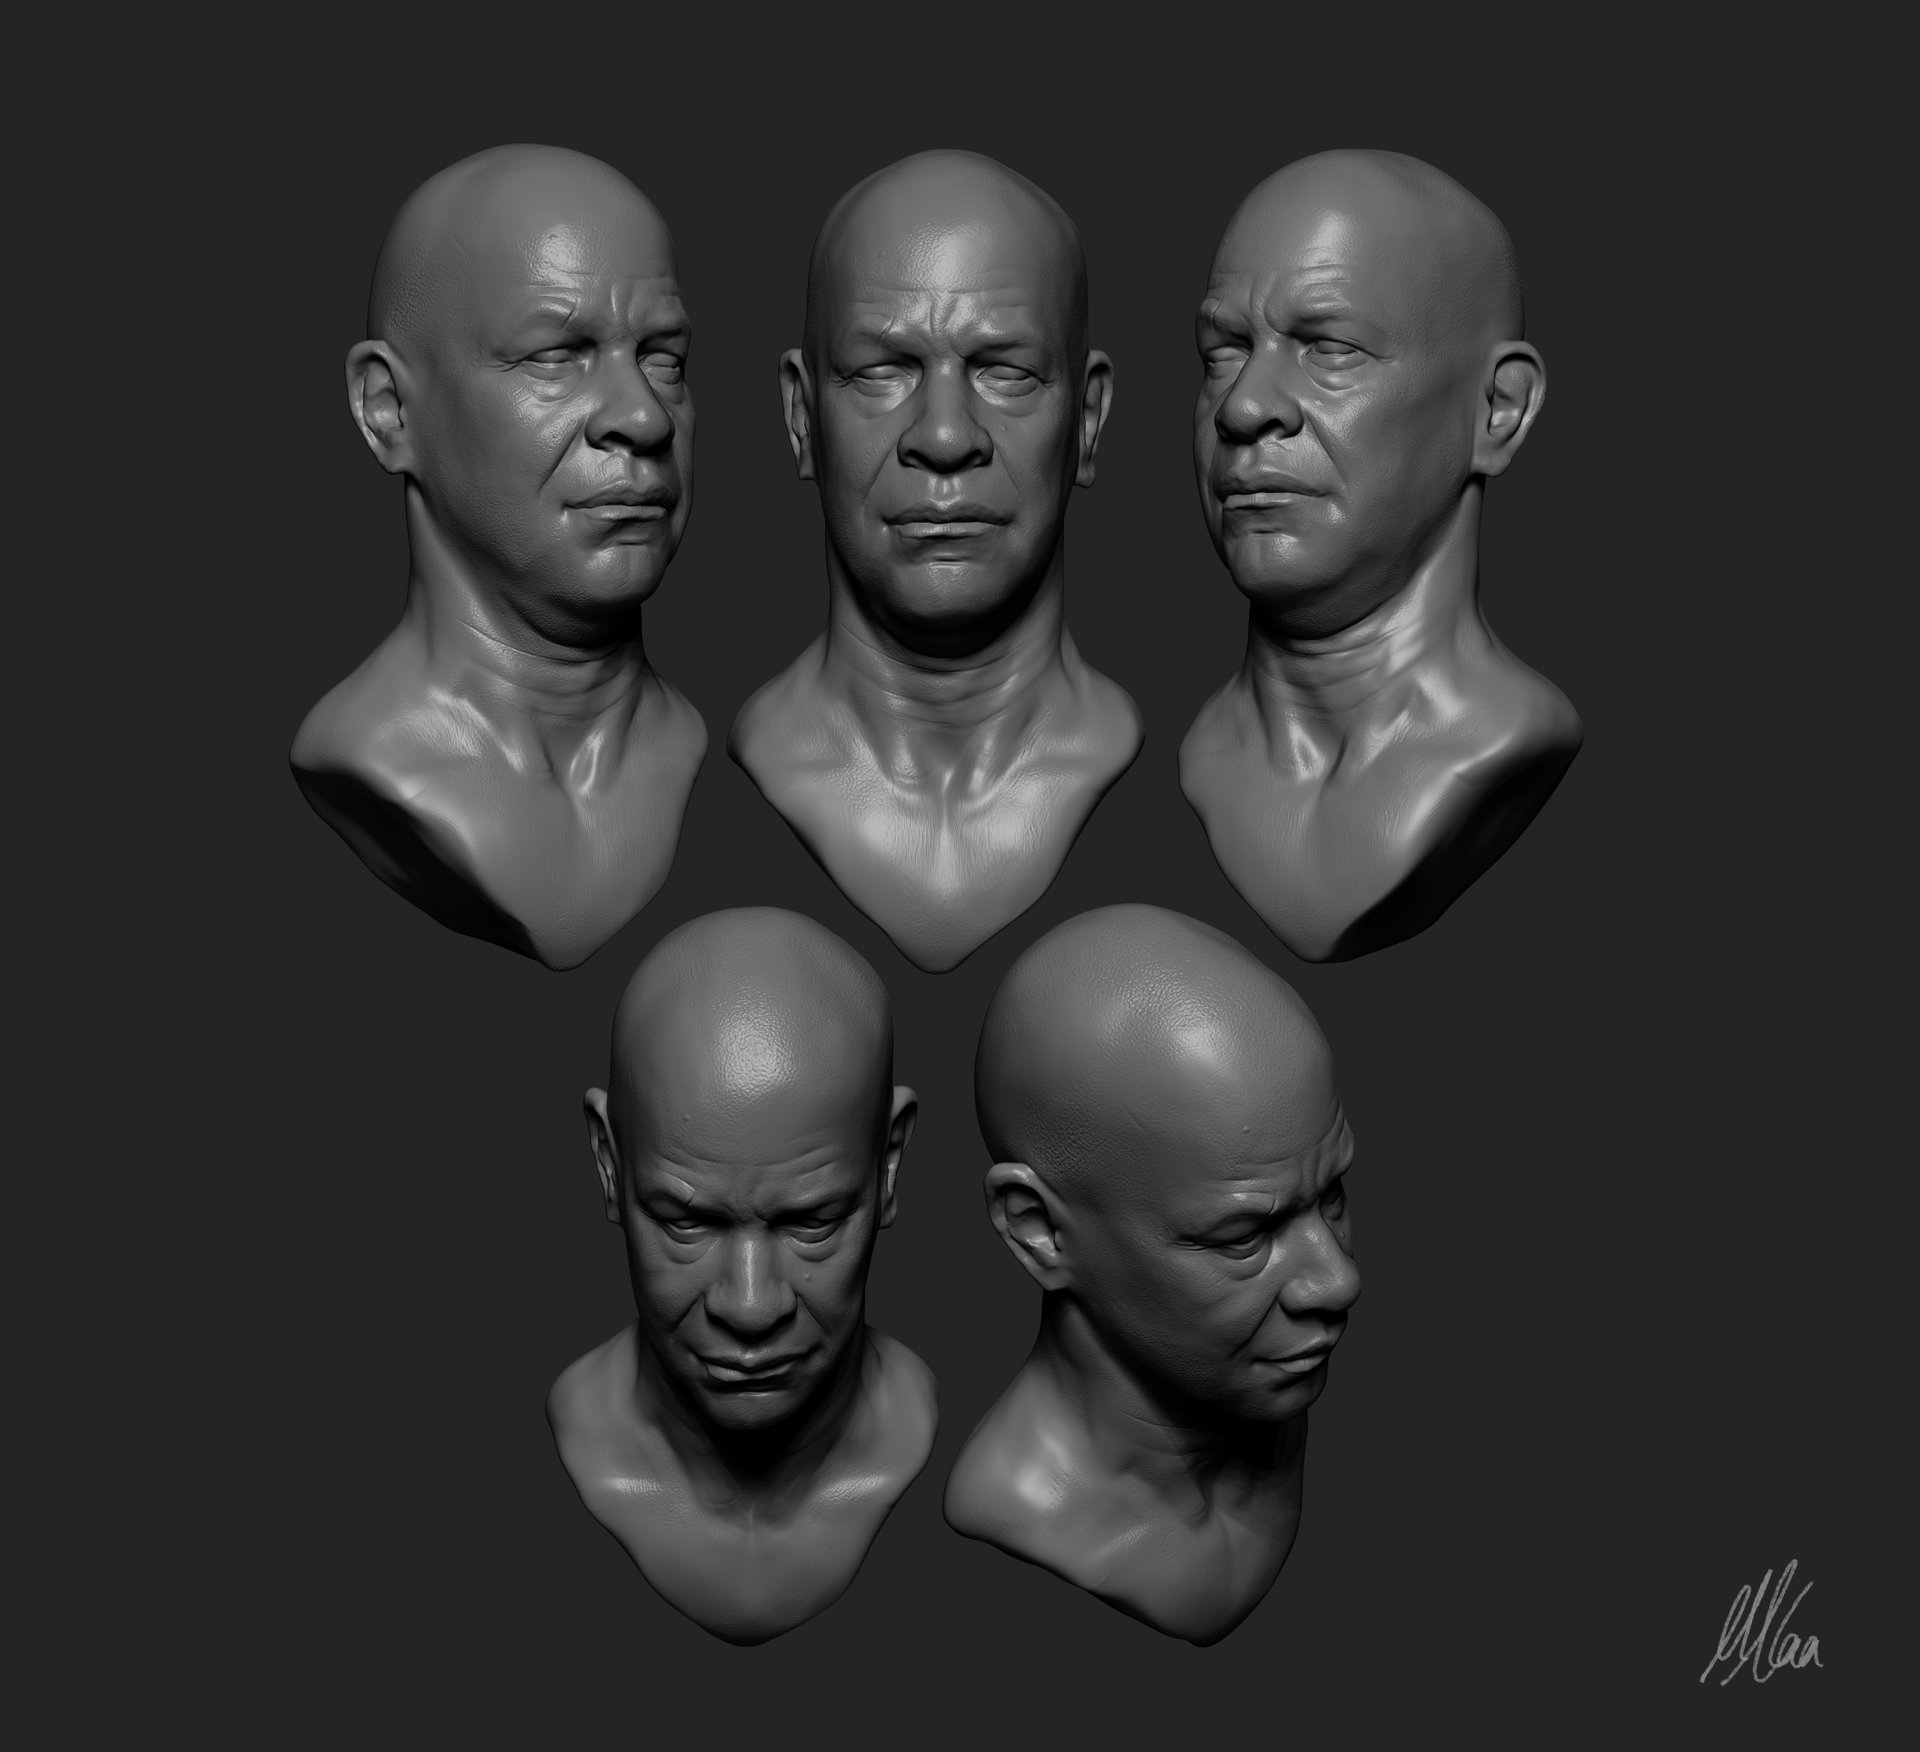 Mohamed alaa mohamed alaa zbrush document6